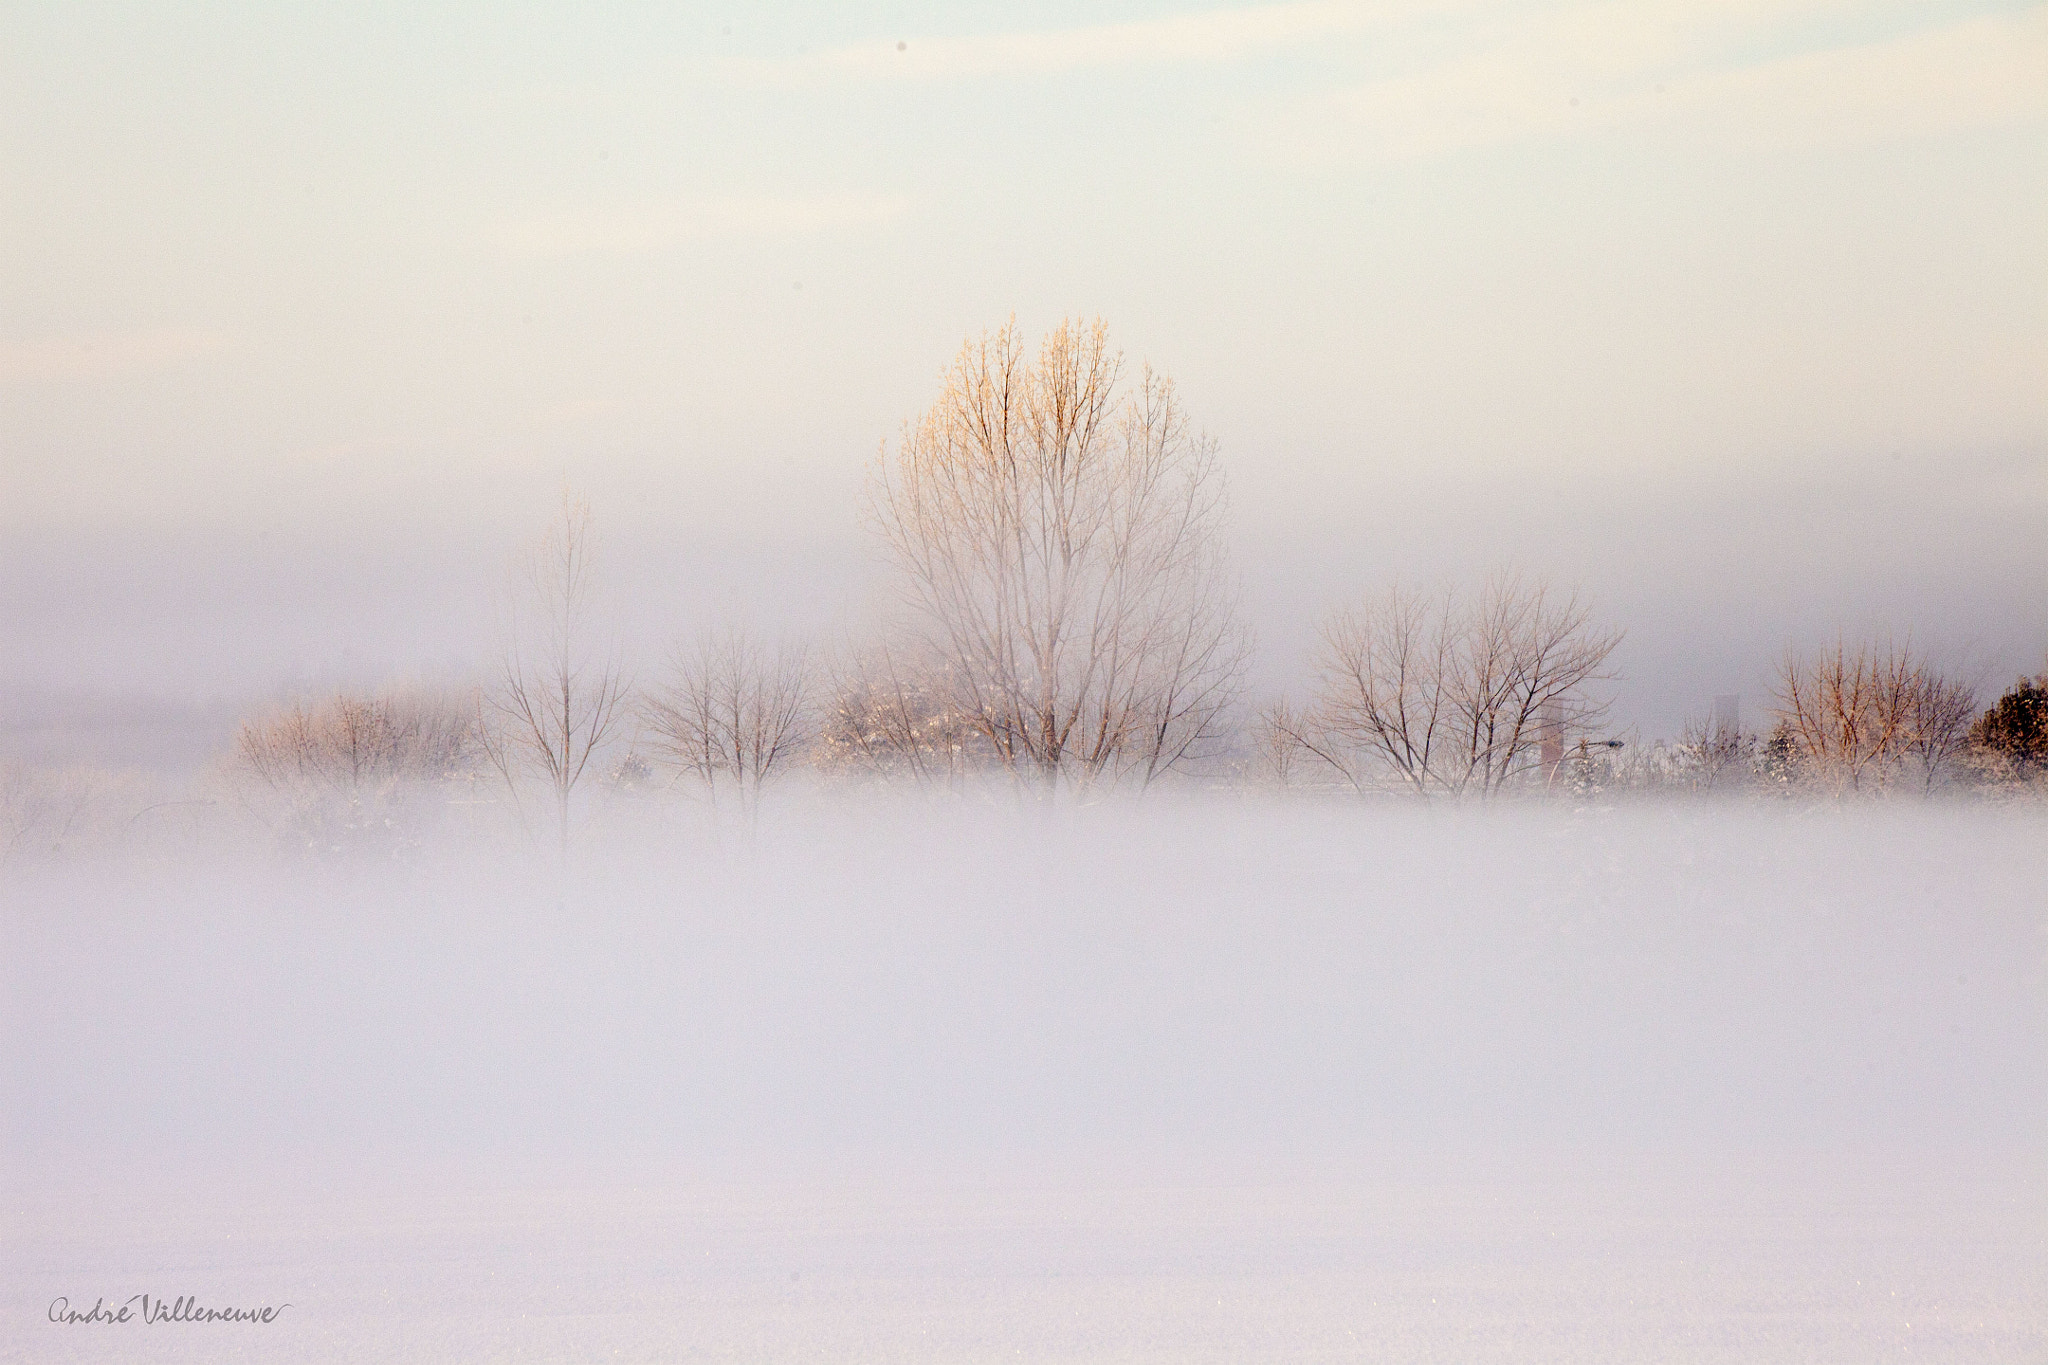 Photograph Cold and quiet by Andre Villeneuve on 500px